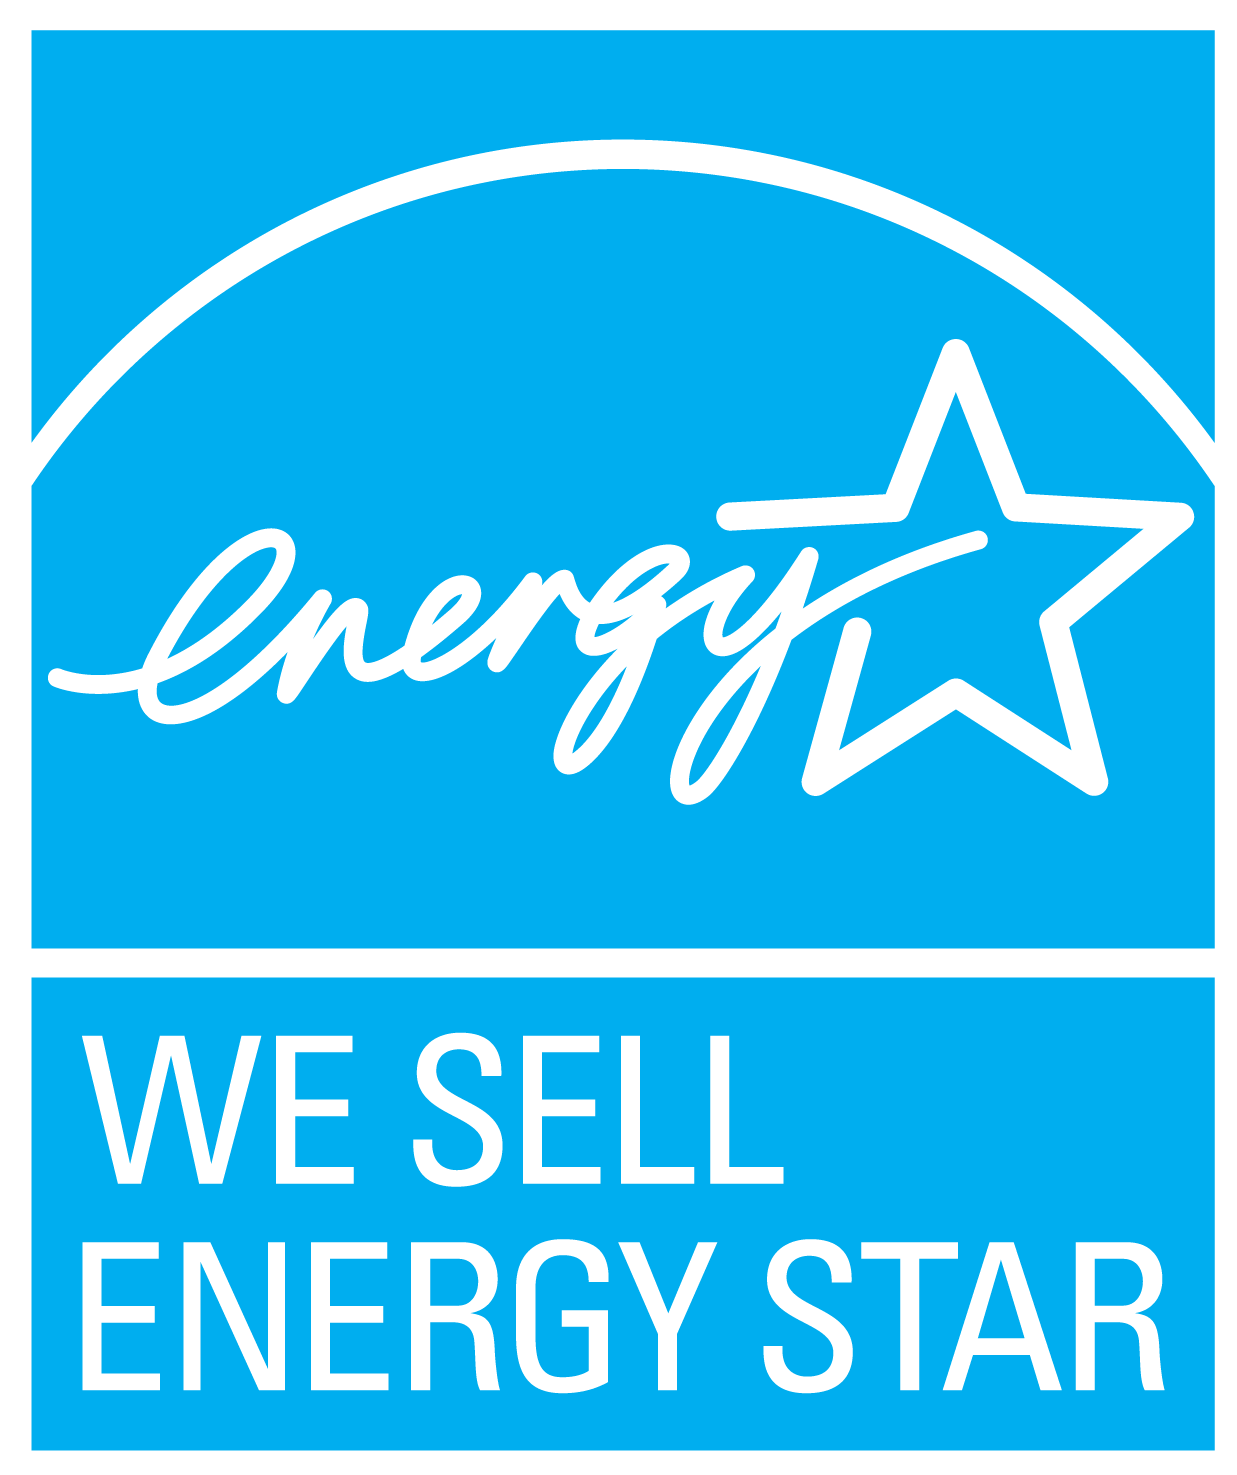 Blue ENERGY STAR symbol with We sell ENERGY STAR caption